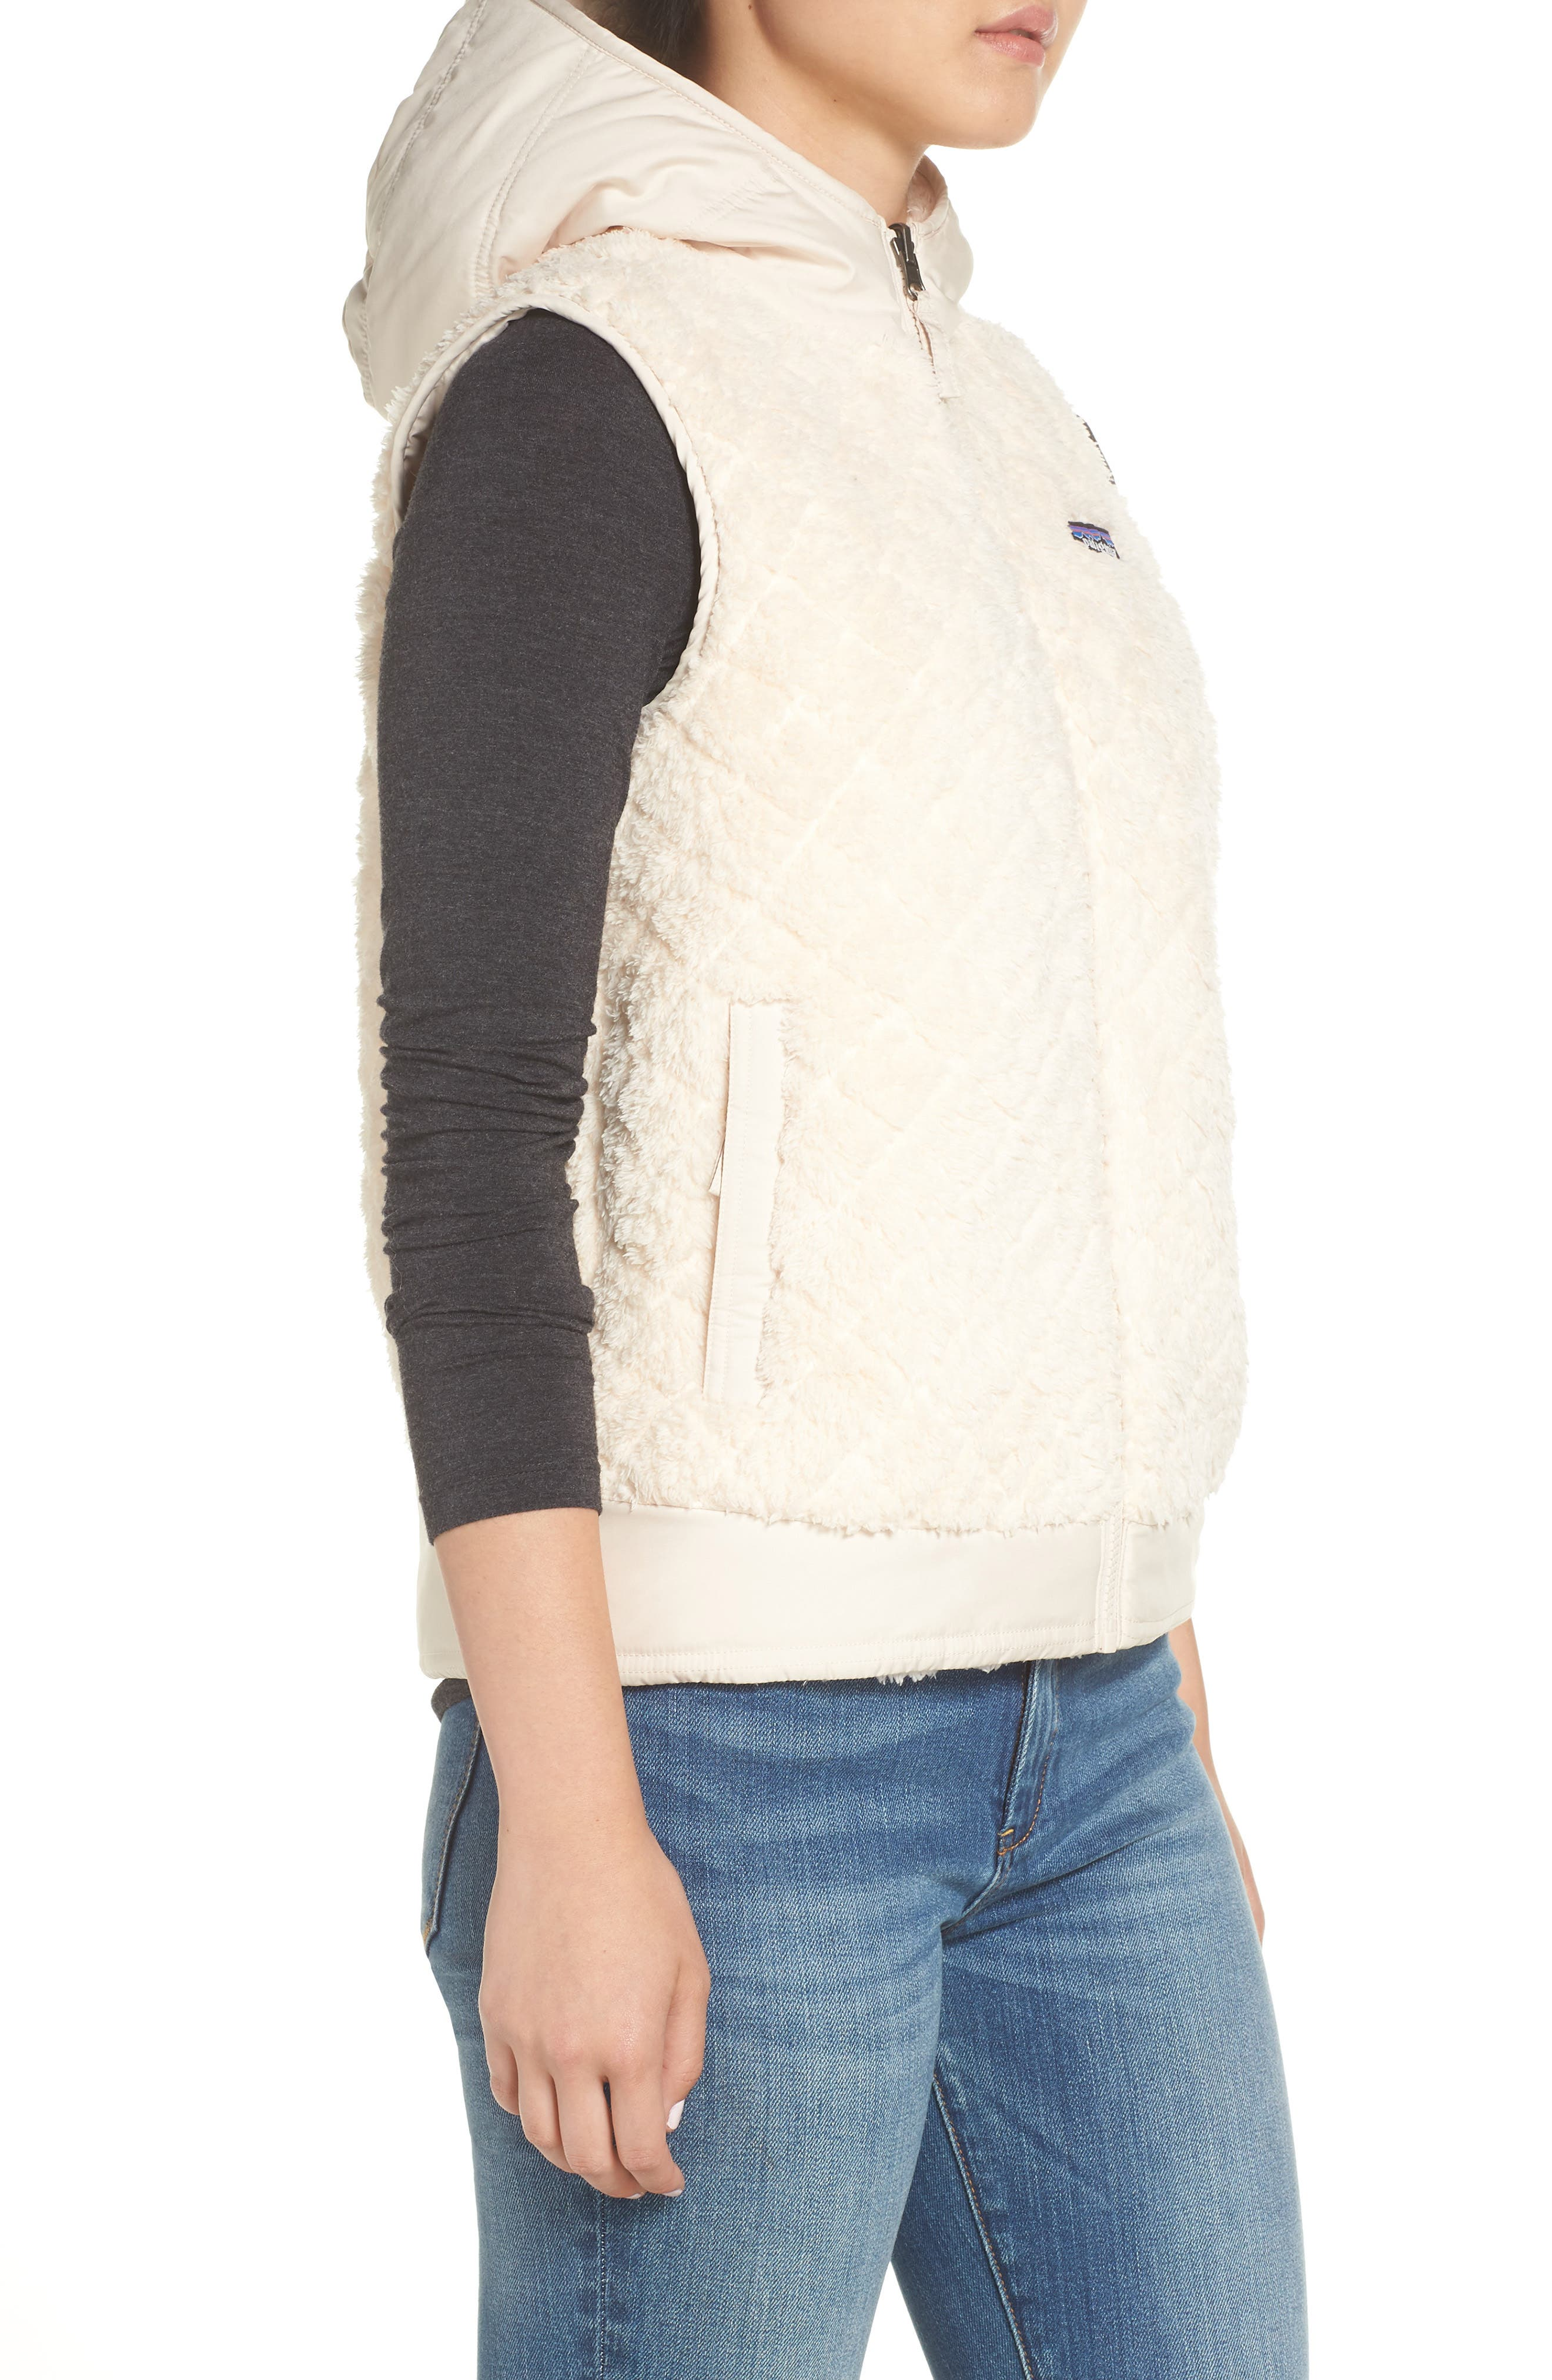 PATAGONIA, Los Gatos Reversible Vest, Alternate thumbnail 4, color, 251